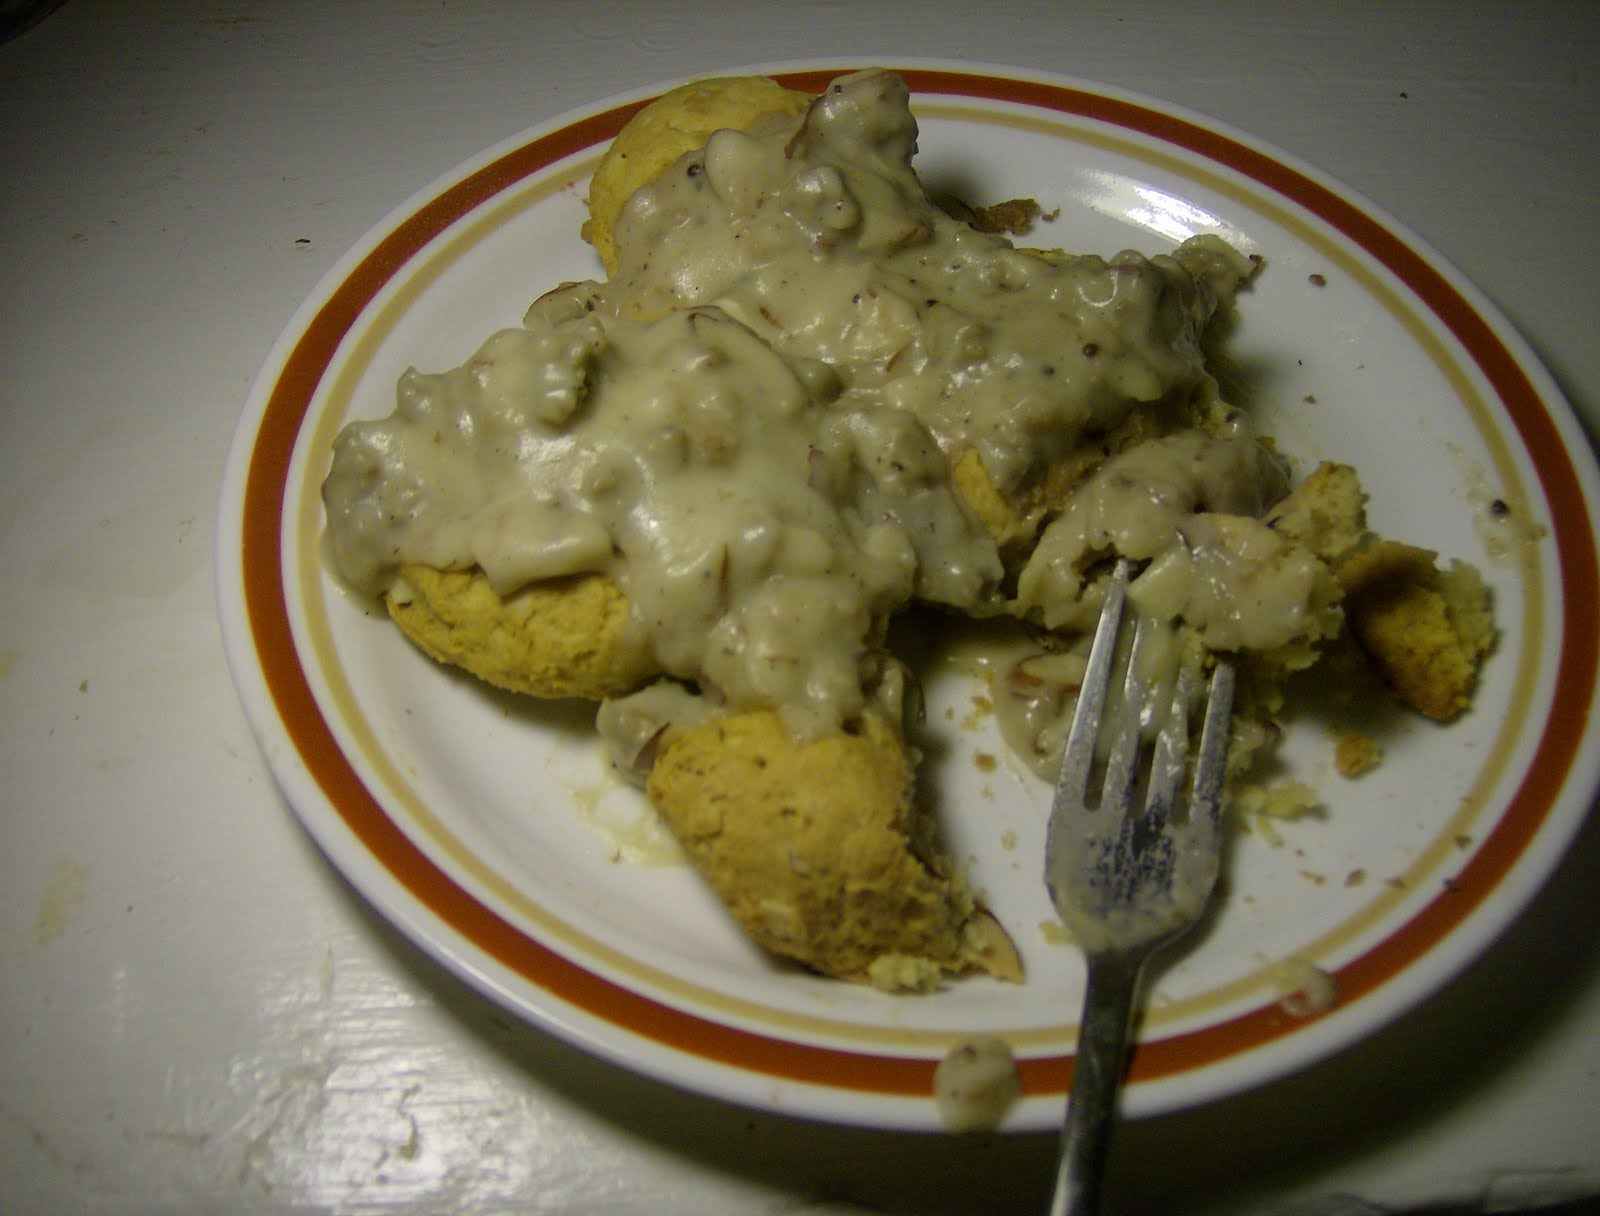 Sci Fried Soggy Biscuits and Nut Gravy